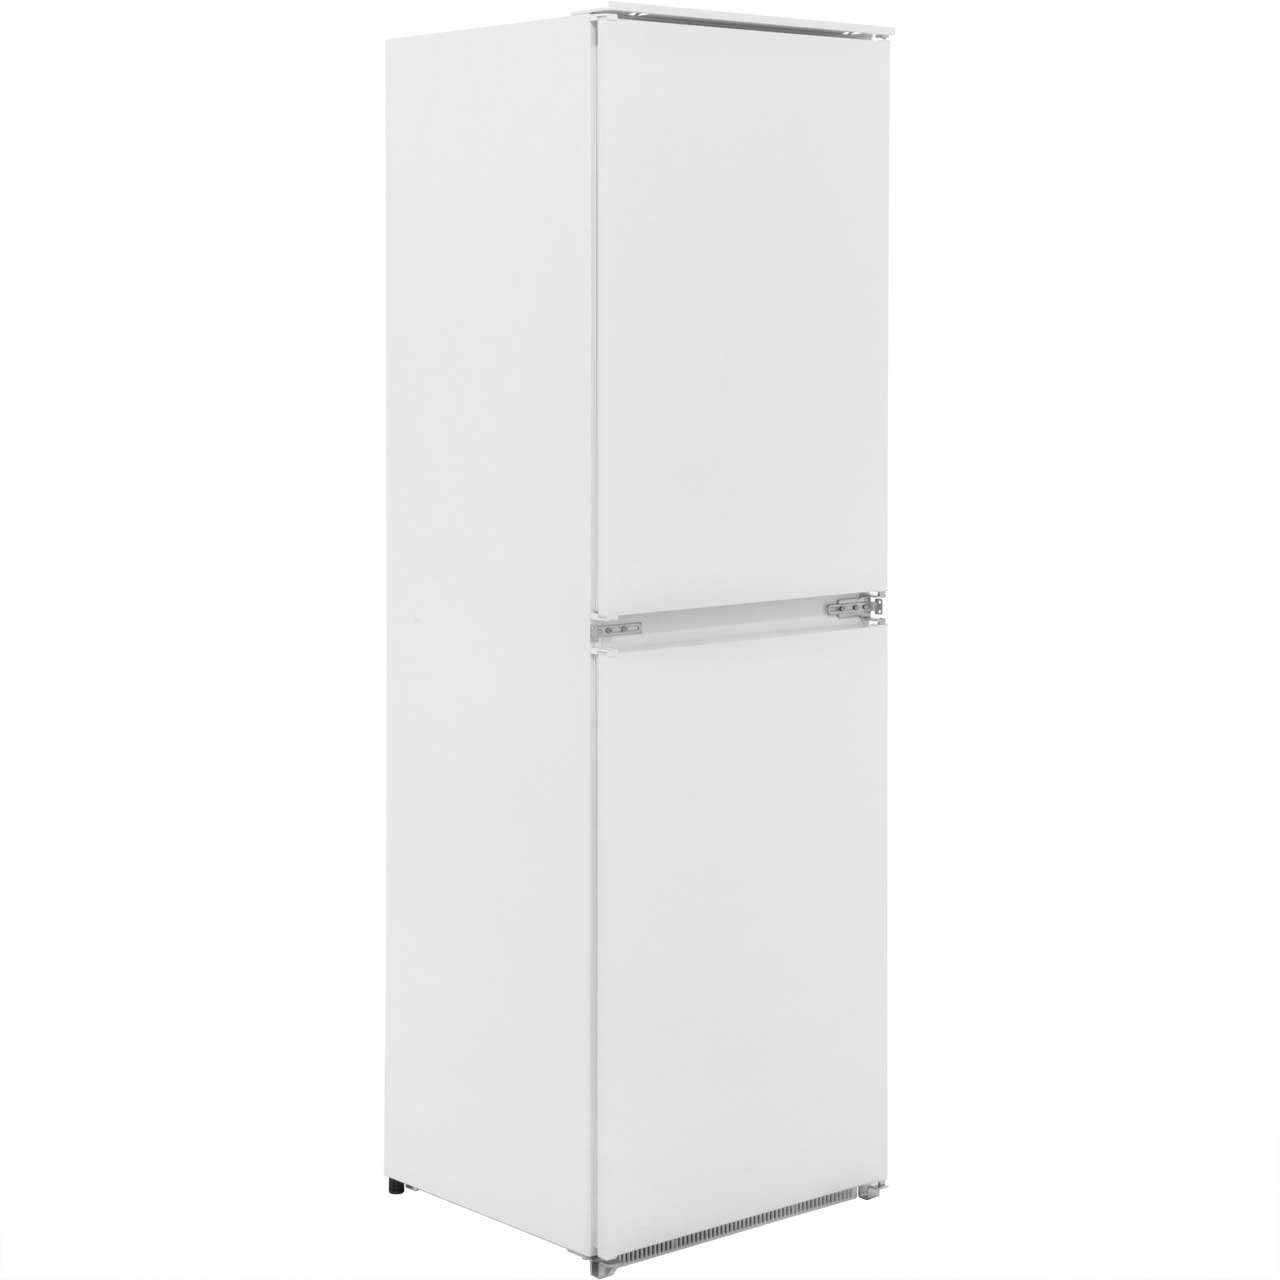 AEG SCN51810S0 Integrated Fridge Freezer Frost Free in White